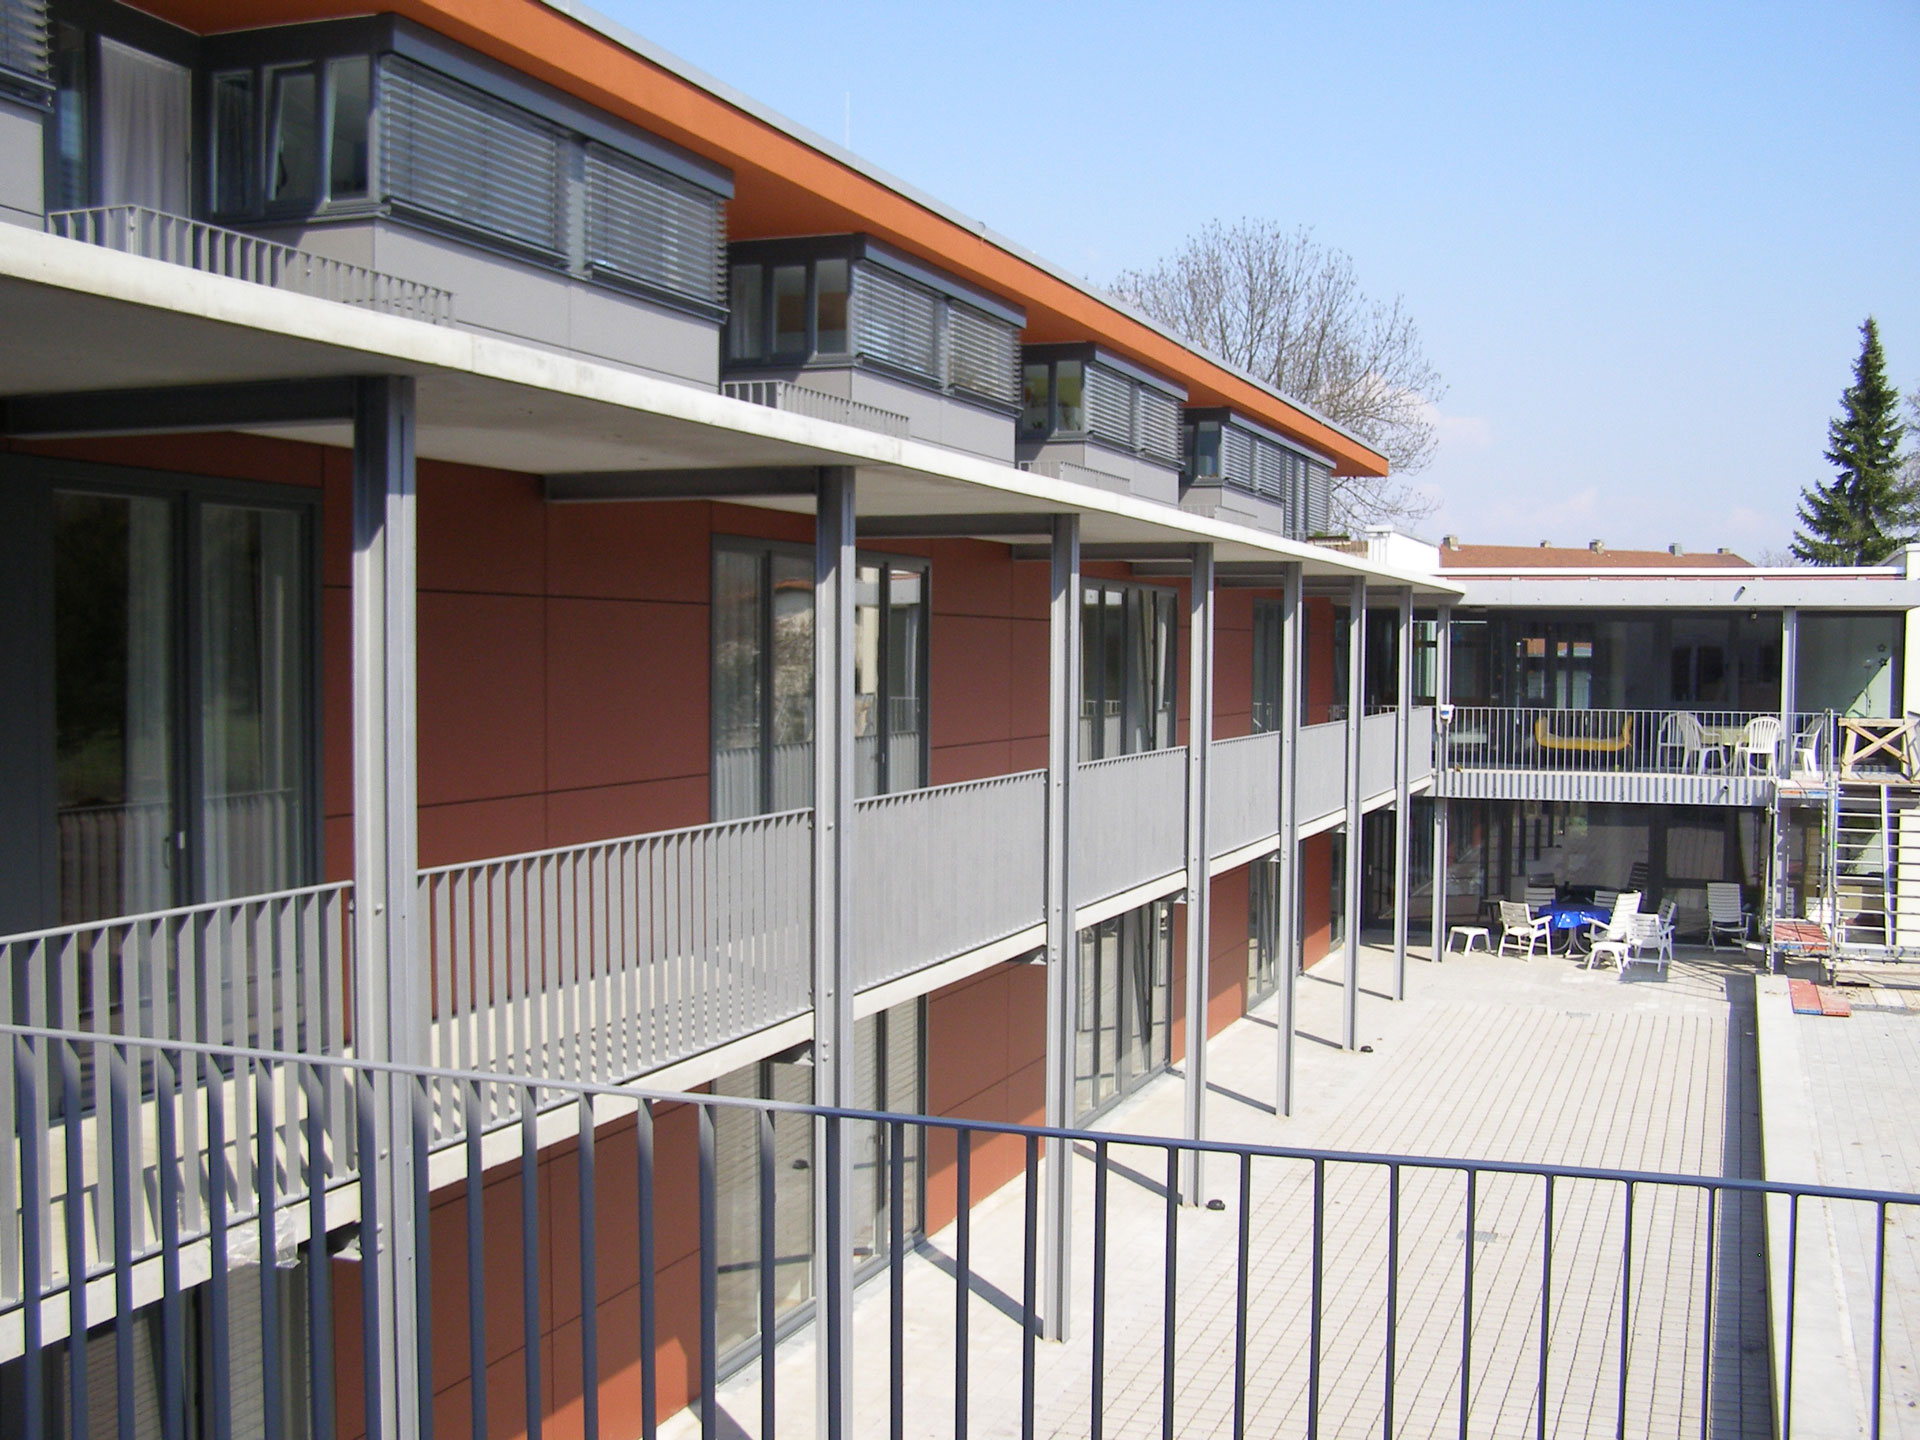 Home for People with Special Needs Solitudestrasse